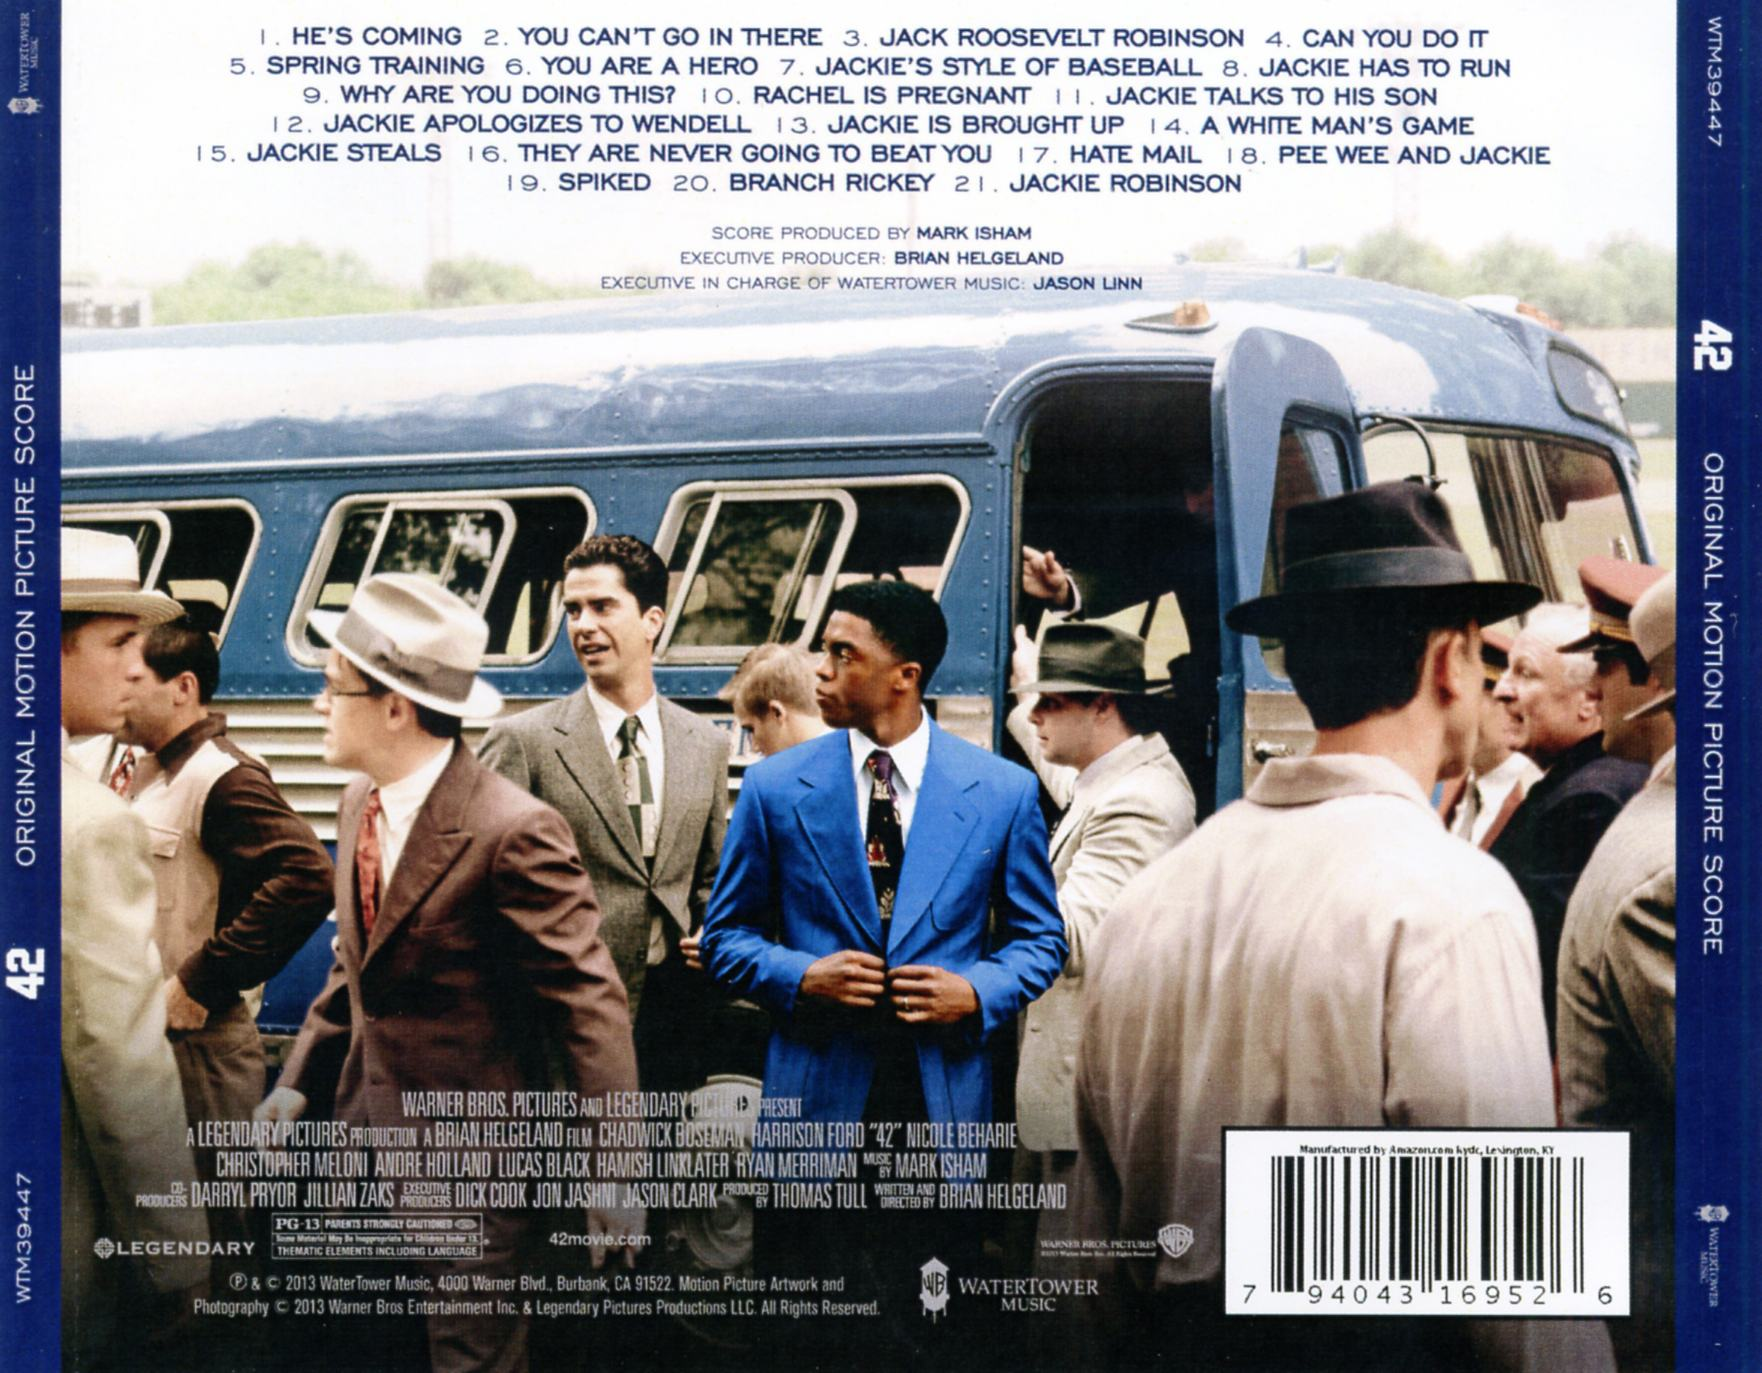 42 the jackie robinson story dvd cover